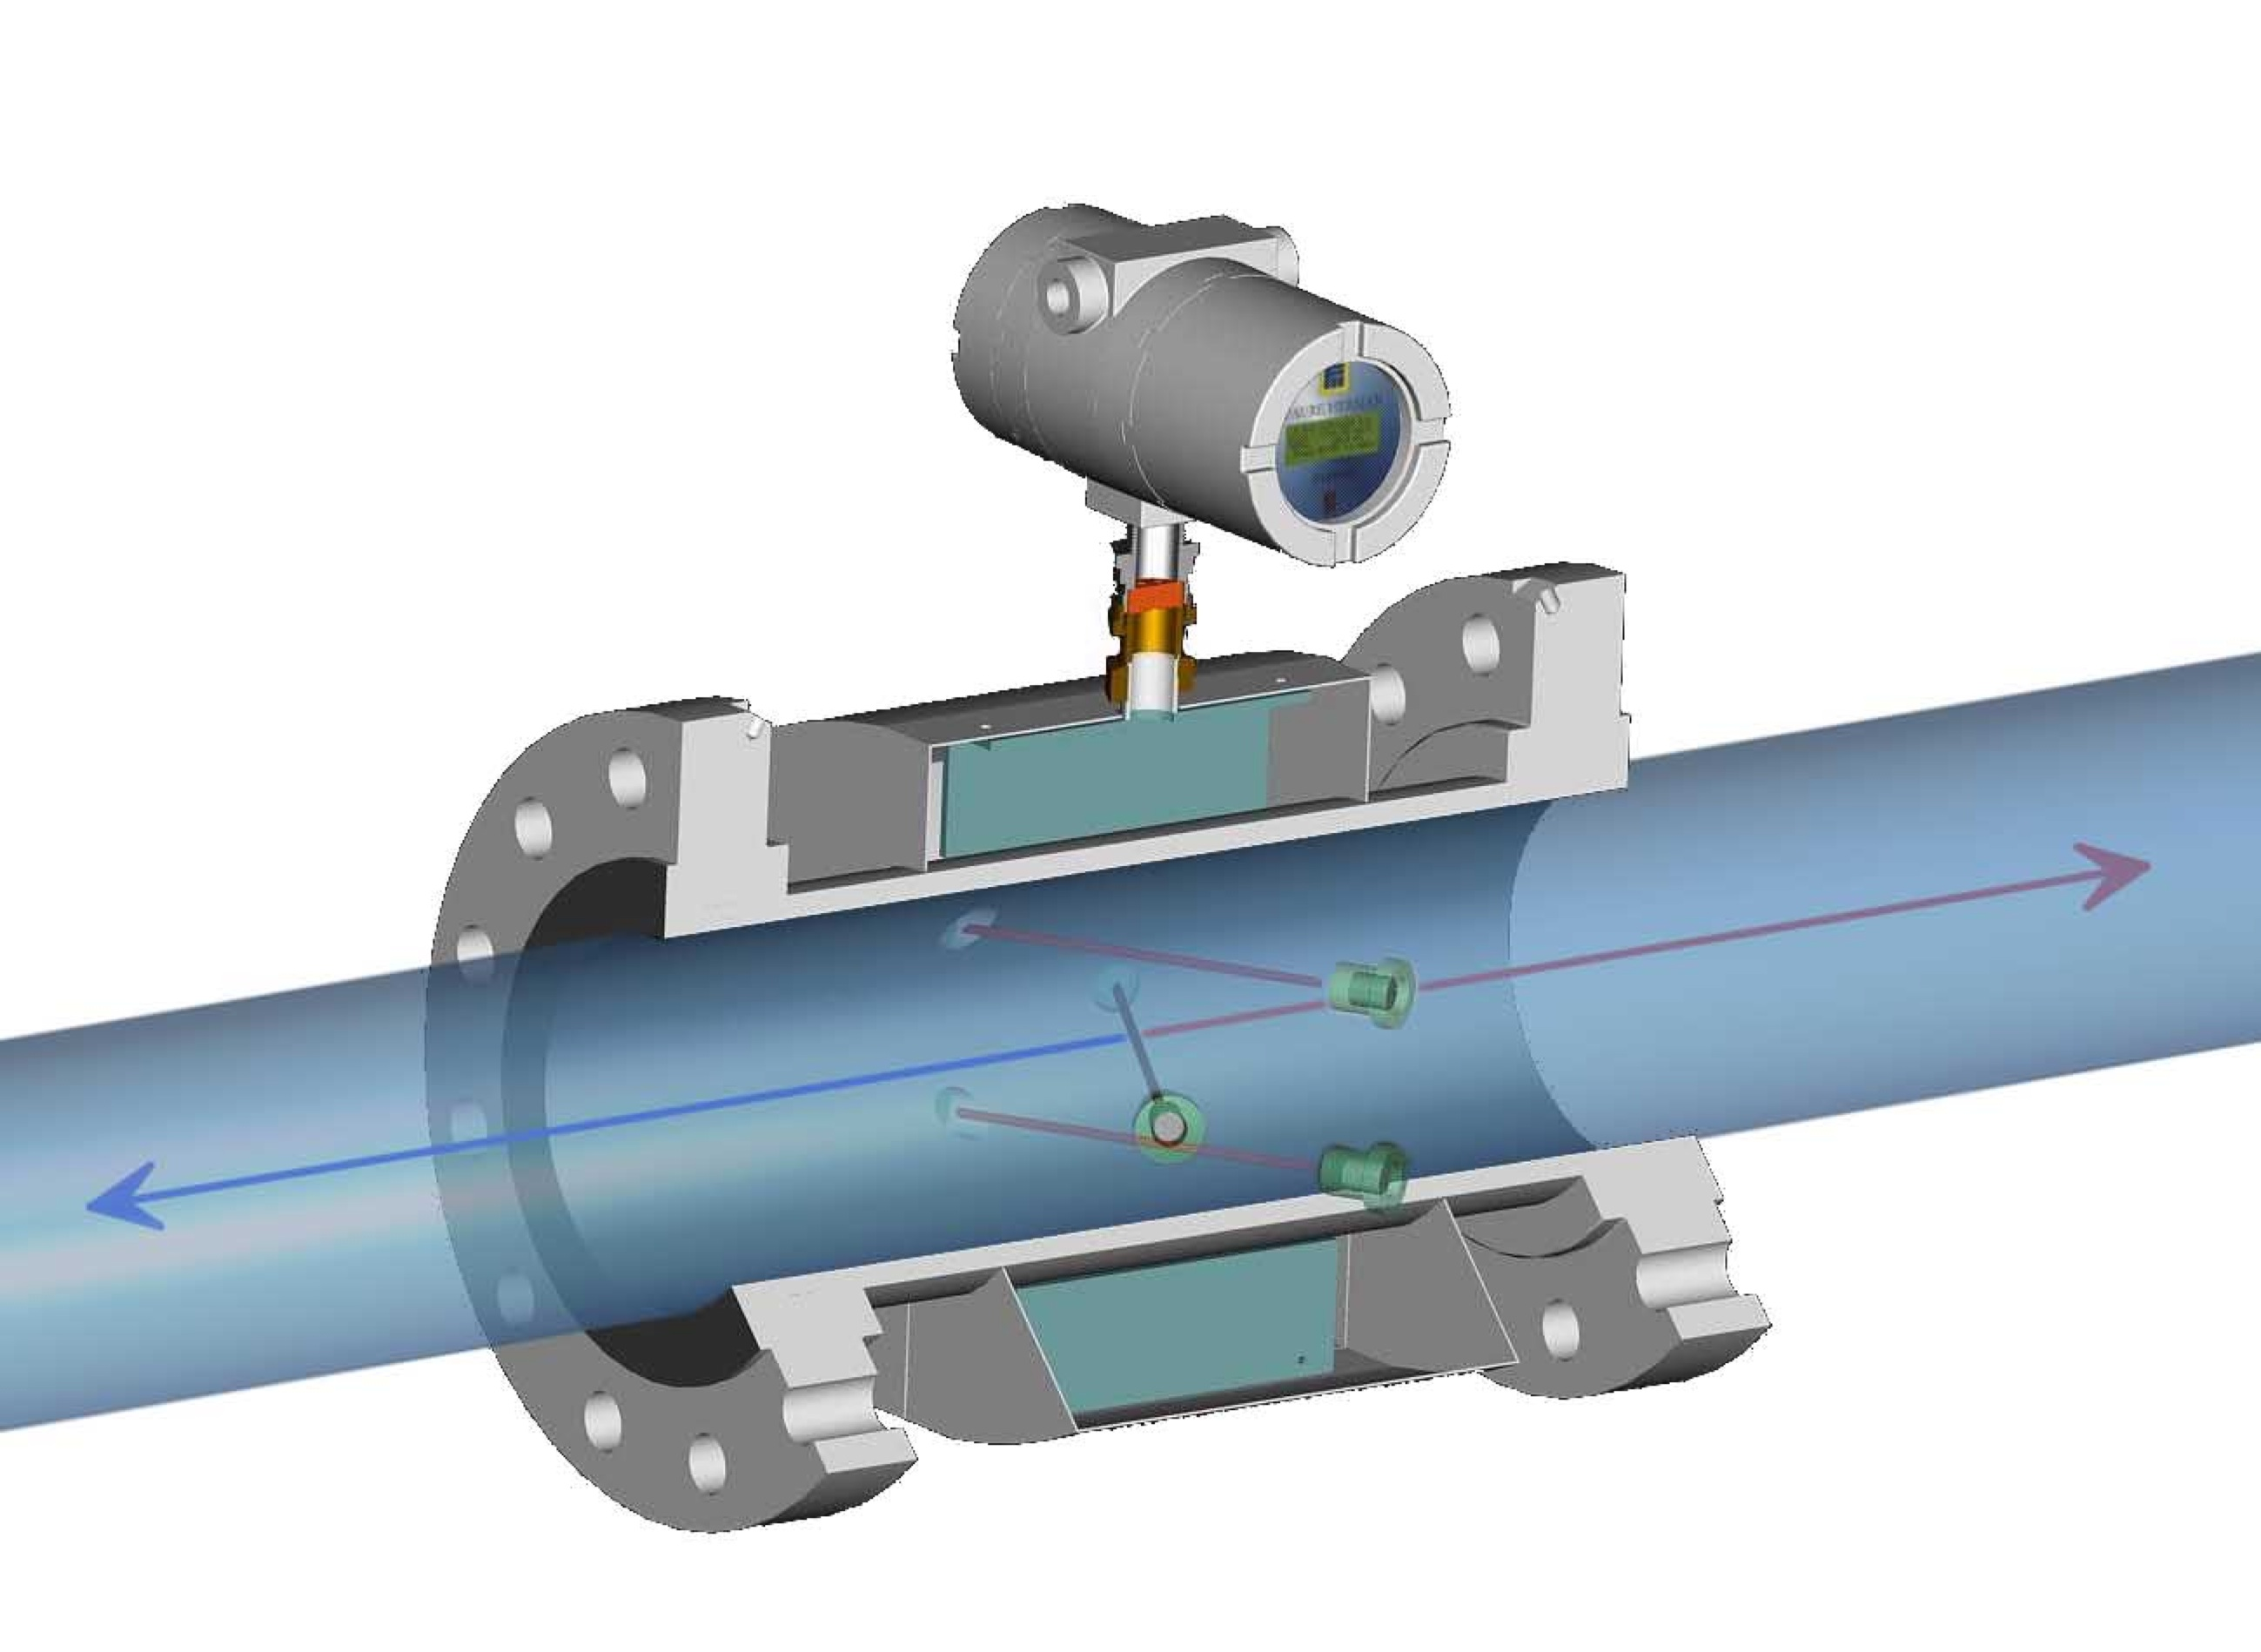 Ultrasonic Flowmeter Market Emerging Trends and Will Generate New Growth Opportunities Status by 2031